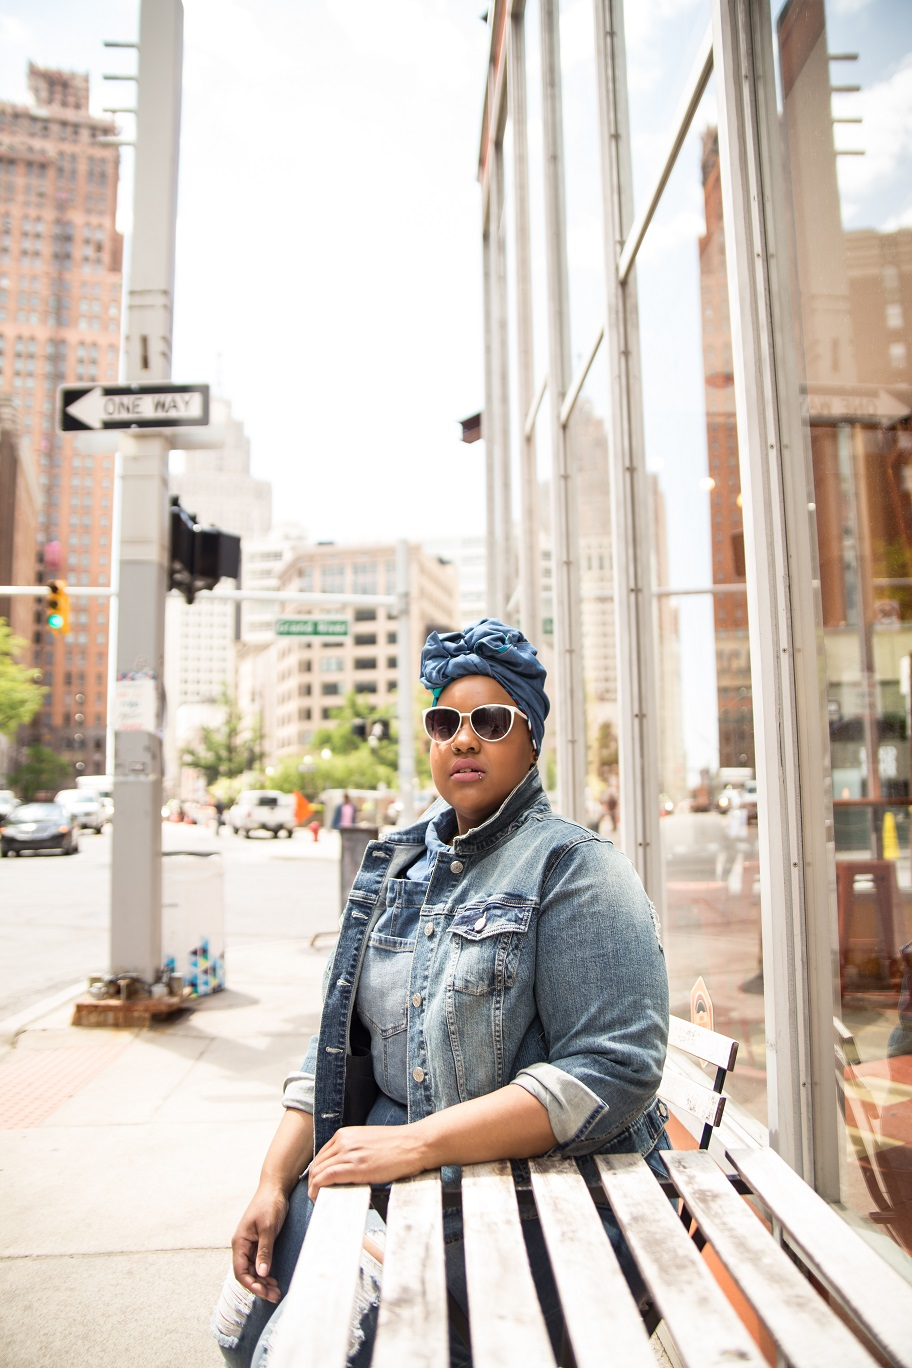 Leah-Vernon-Plus-Size-Model-Detroit-Blogger-Muslim-Girl-Body-positive-1